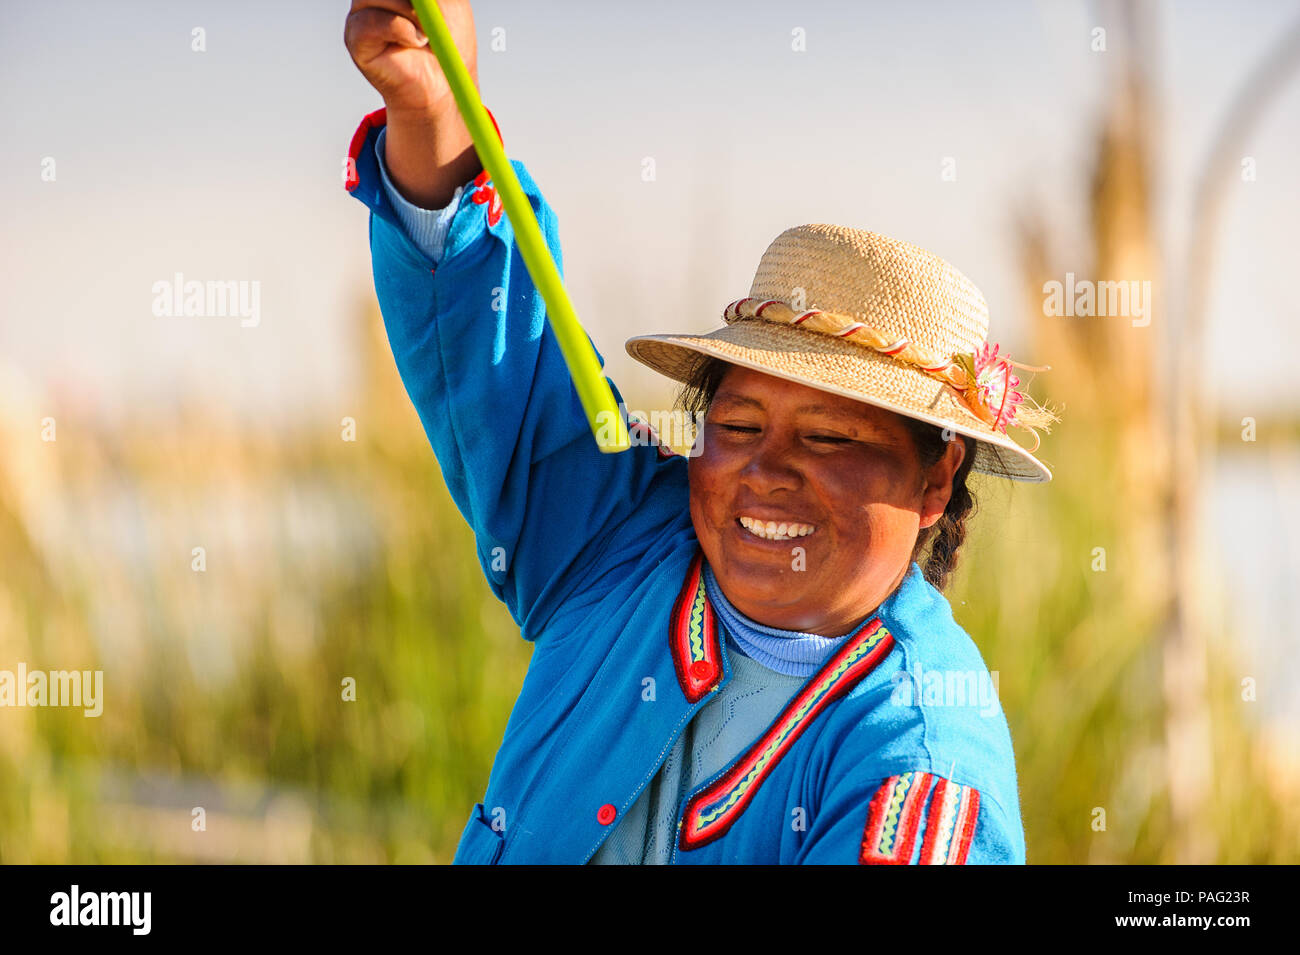 PUNO, PERU - NOVEMBER 7, 2010: Unidentified Peruvian woman in traditional clothes rows the boat in Uros Islands, Peru, Nov 7, 2010. Uros Islands iclud - Stock Image